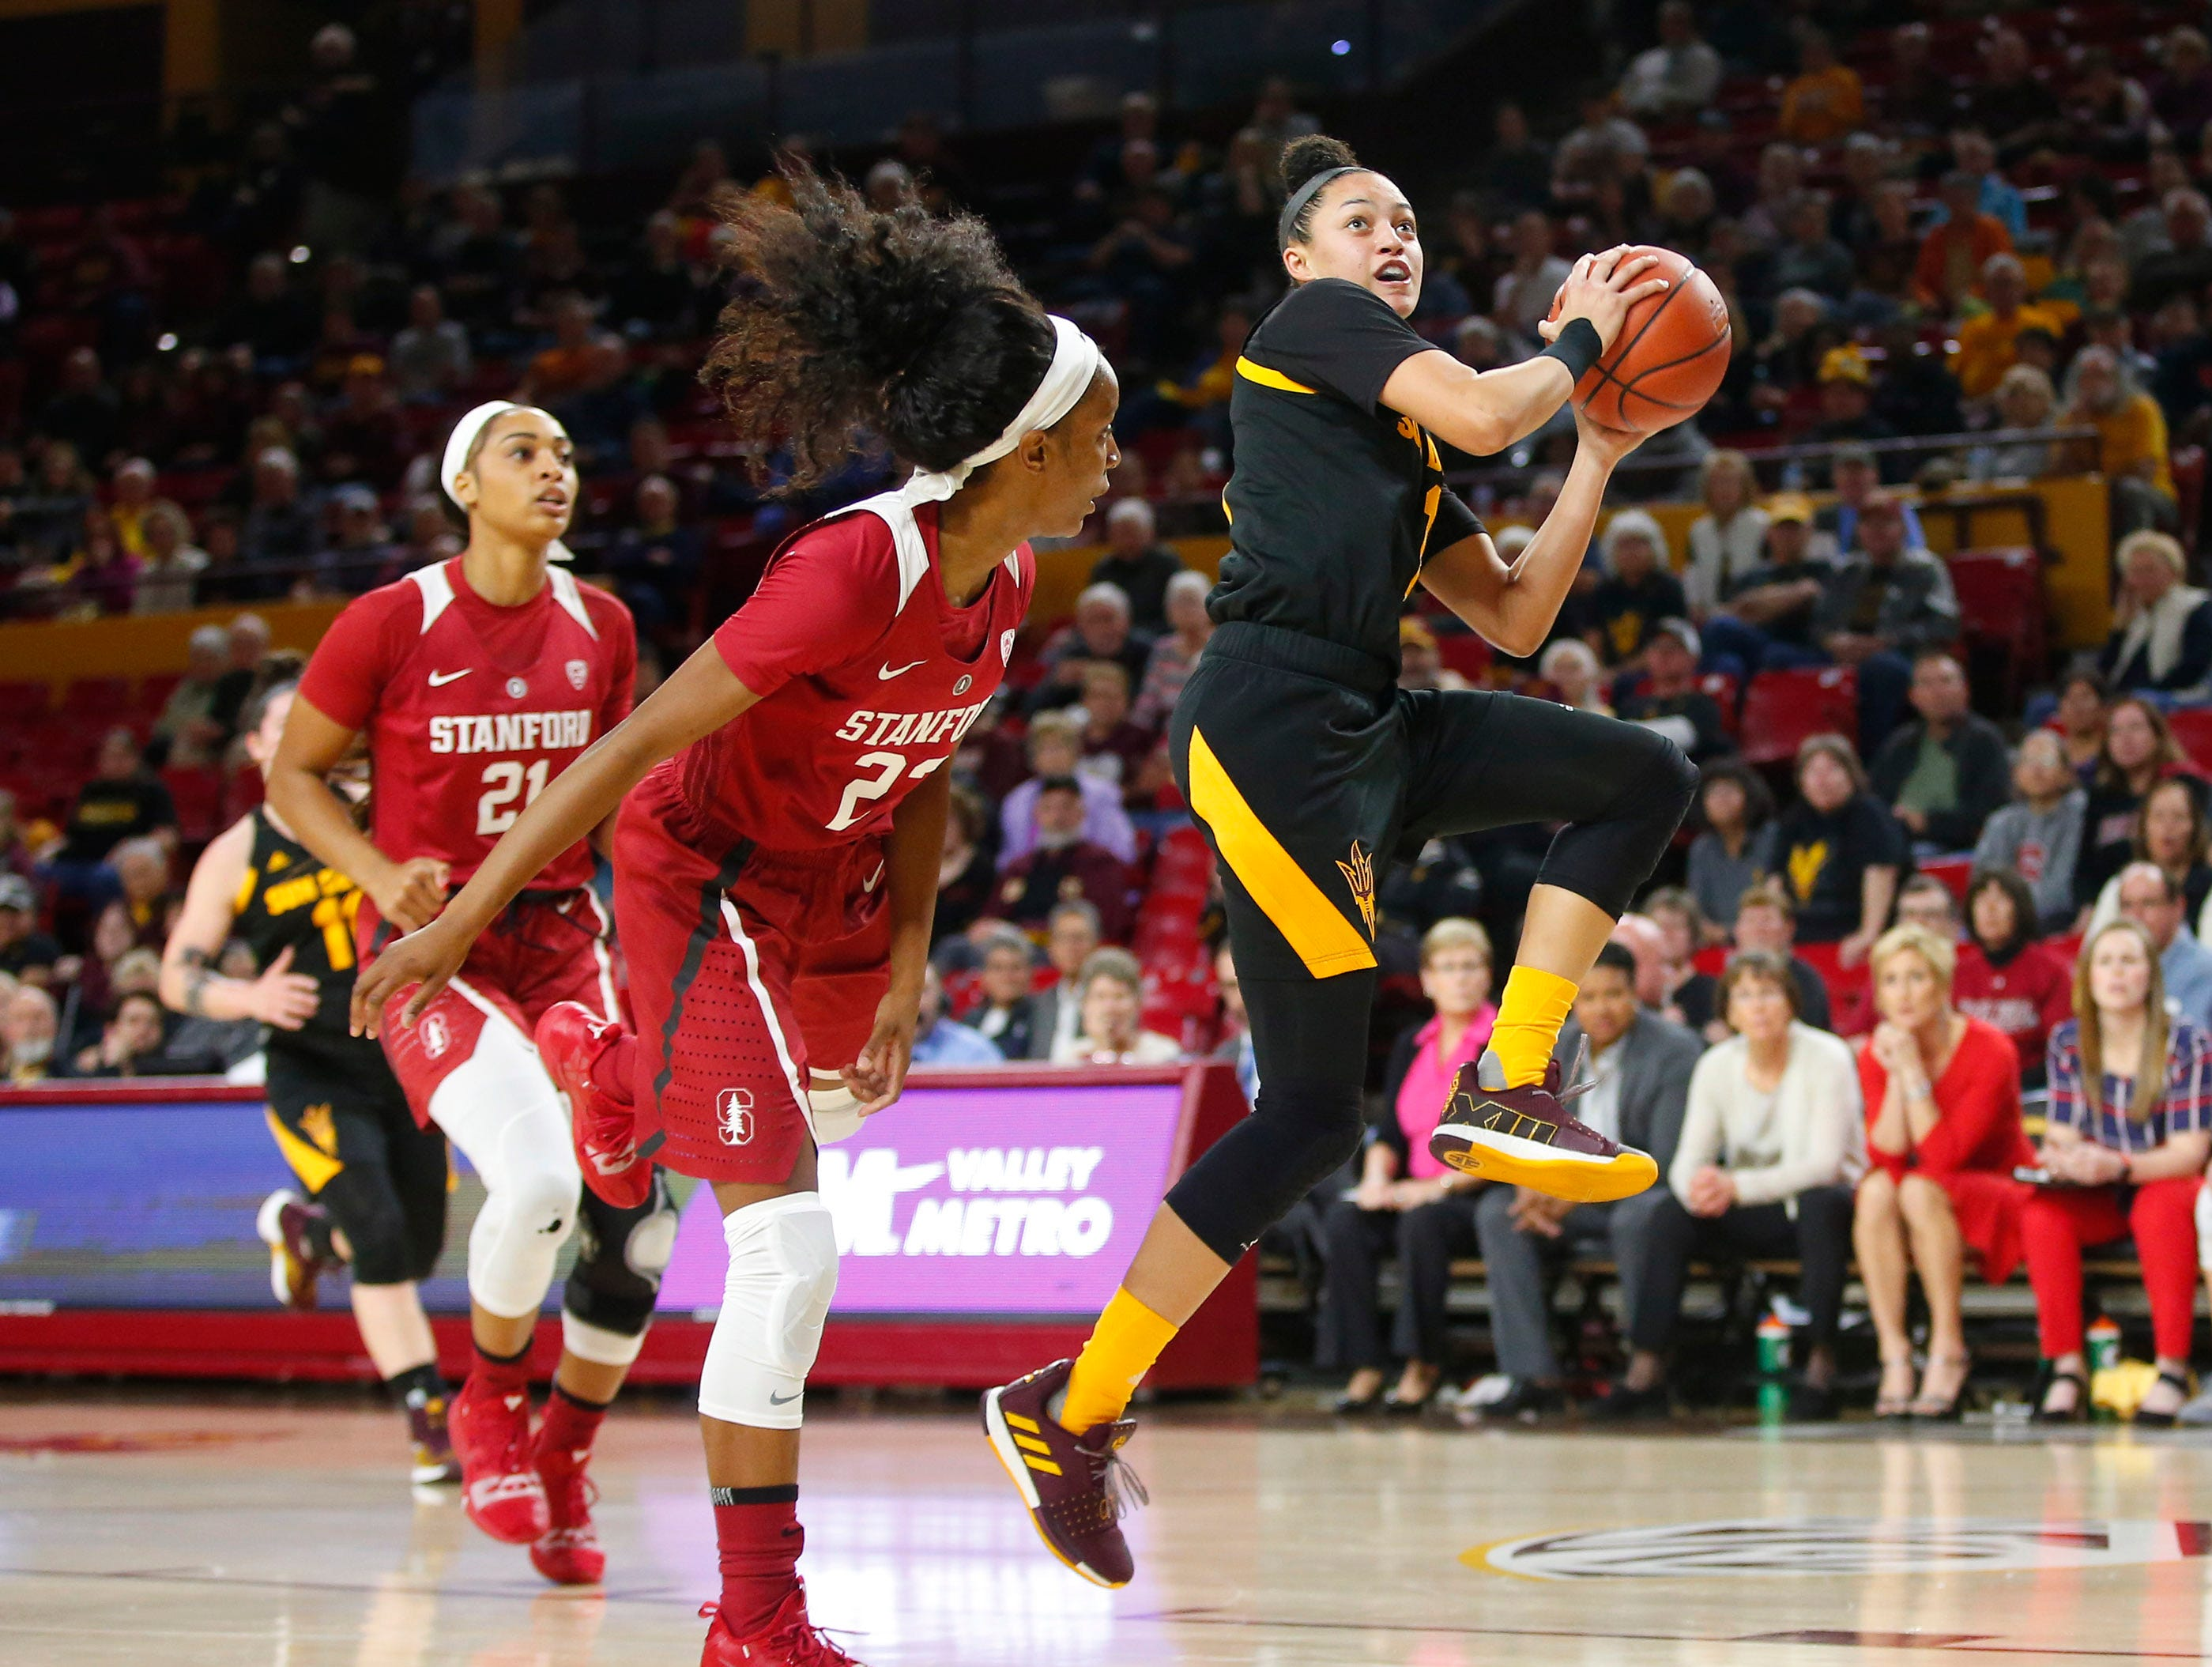 Arizona State University Reili Richardson (1)  looks to shoot while being guarded by Stanford University Kiana Williams (23)during a women's basketball game at Well Fargo Ar ena in Tempe on January 11.